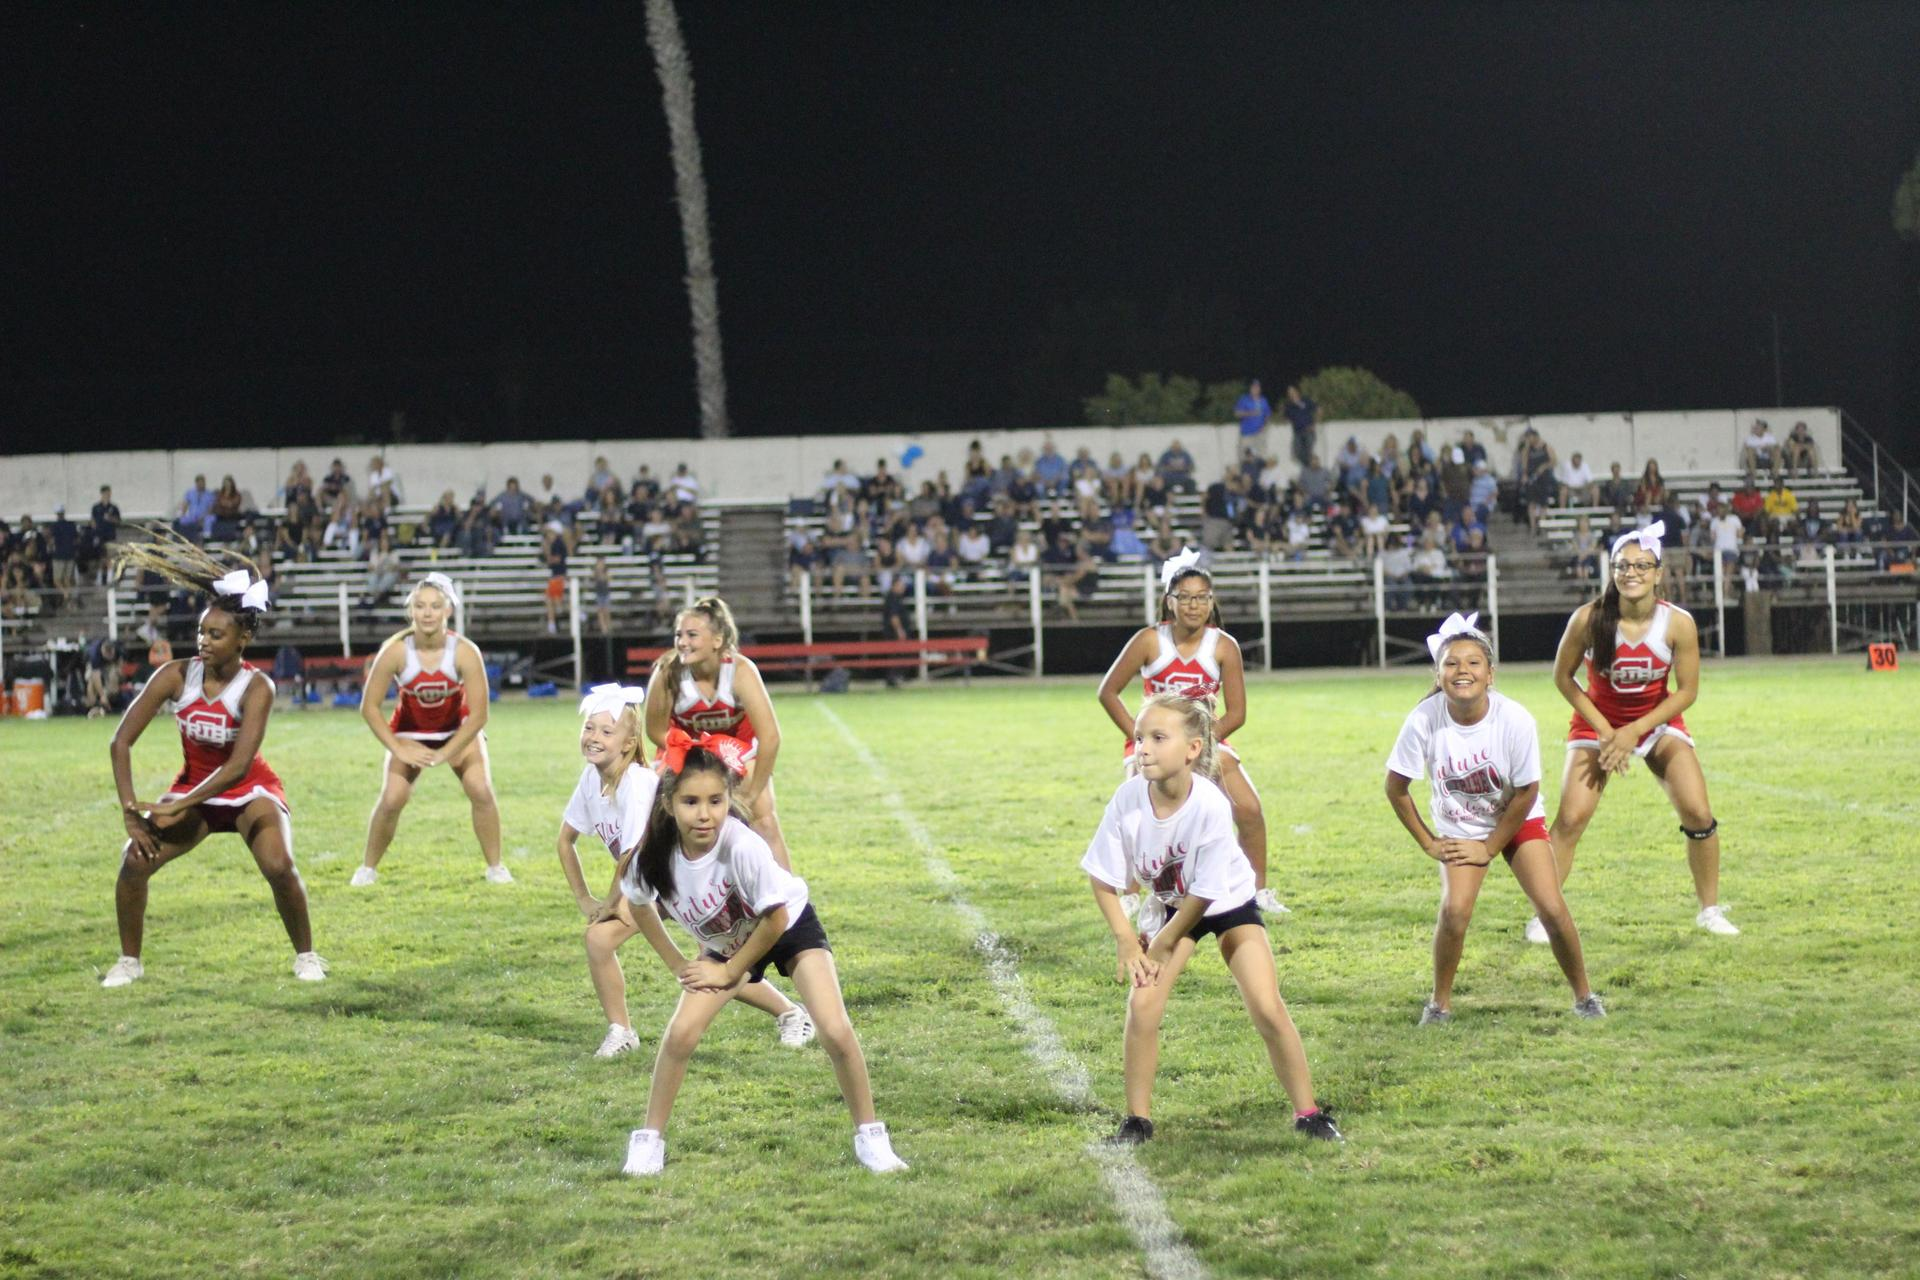 Varsity Cheerleaders at the Central valley christian football game